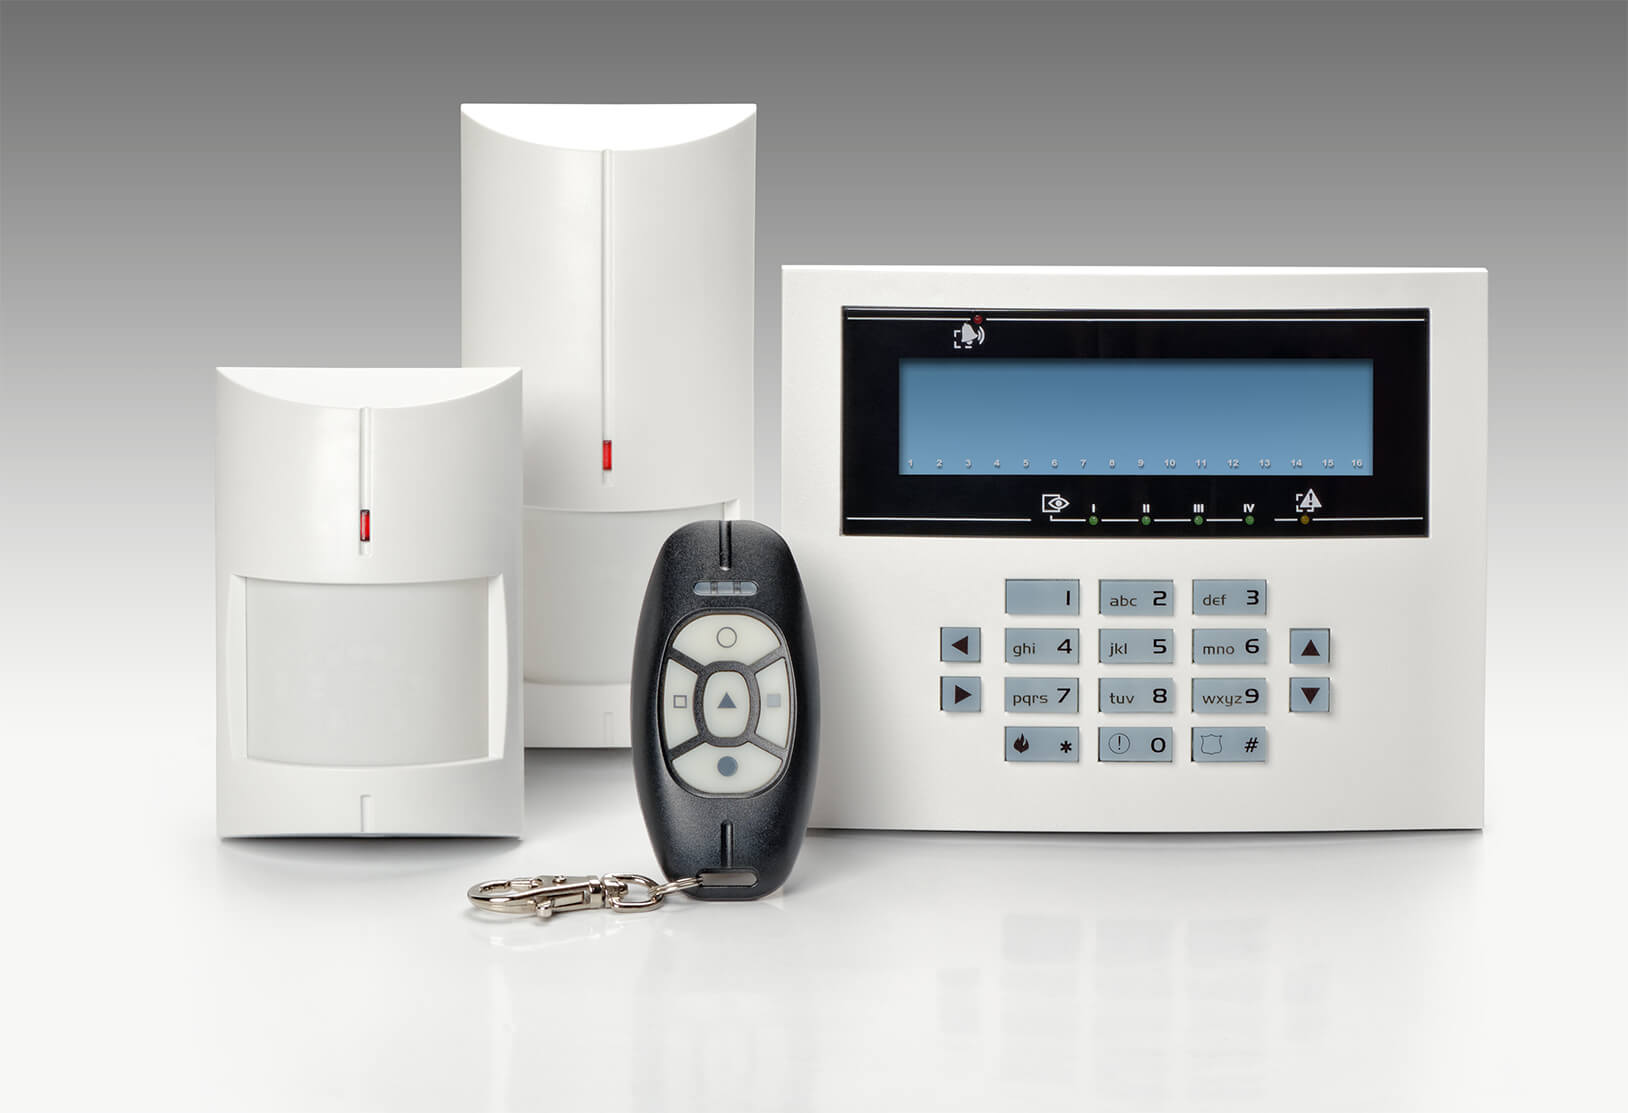 Commercial Burglar Alarms For Business in Clapham SW4  - Local Clapham SW4 burglar alarm company.Call 02078872244 - Dedicated to Safety & Security. Companies, shops and homes ..